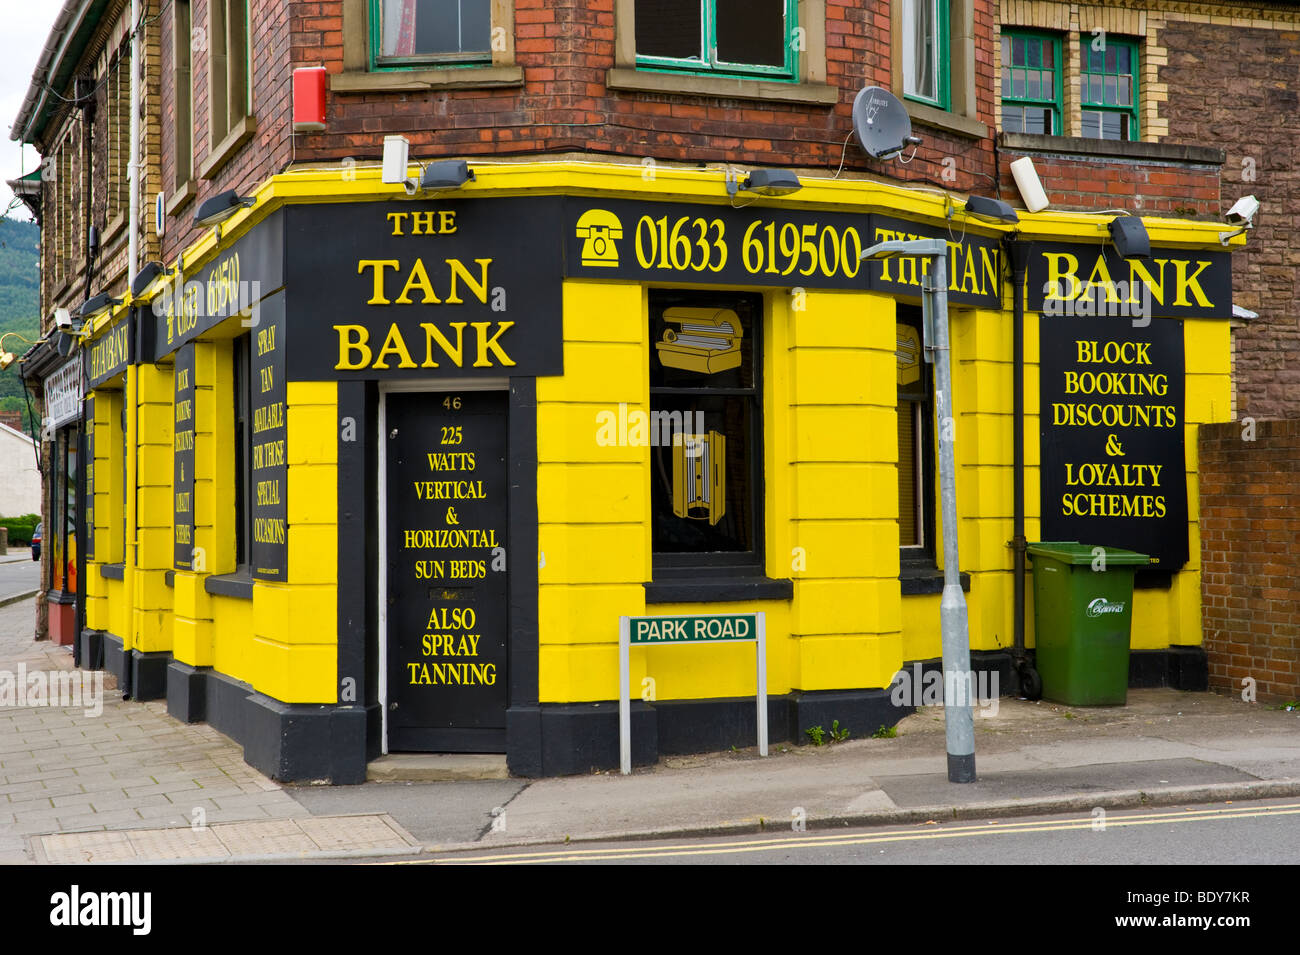 tanning salon stock photos tanning salon stock images alamy exterior of yellow and black the tan bank tanning salon in former bank building uk